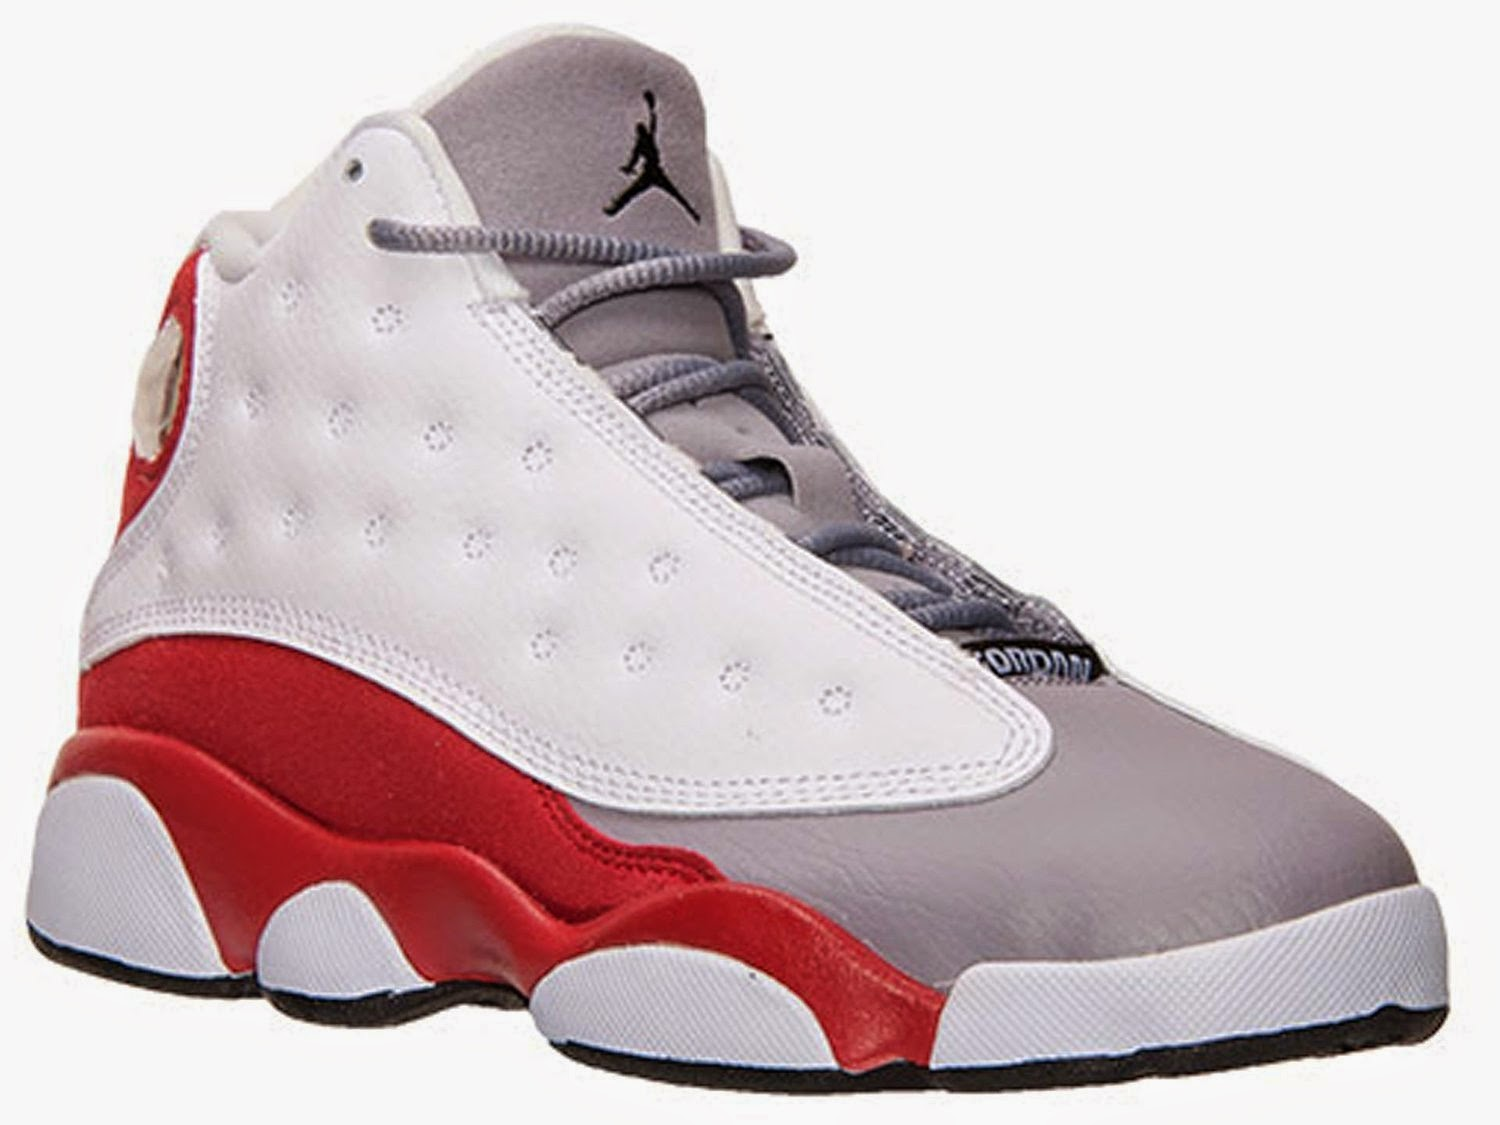 buy online 8d534 d09dd wholesale air jordan 13 retro premium reflective silver infrared 23 black  70191 f87a0; discount all white jordan retro 5 for men a8ae7 88312